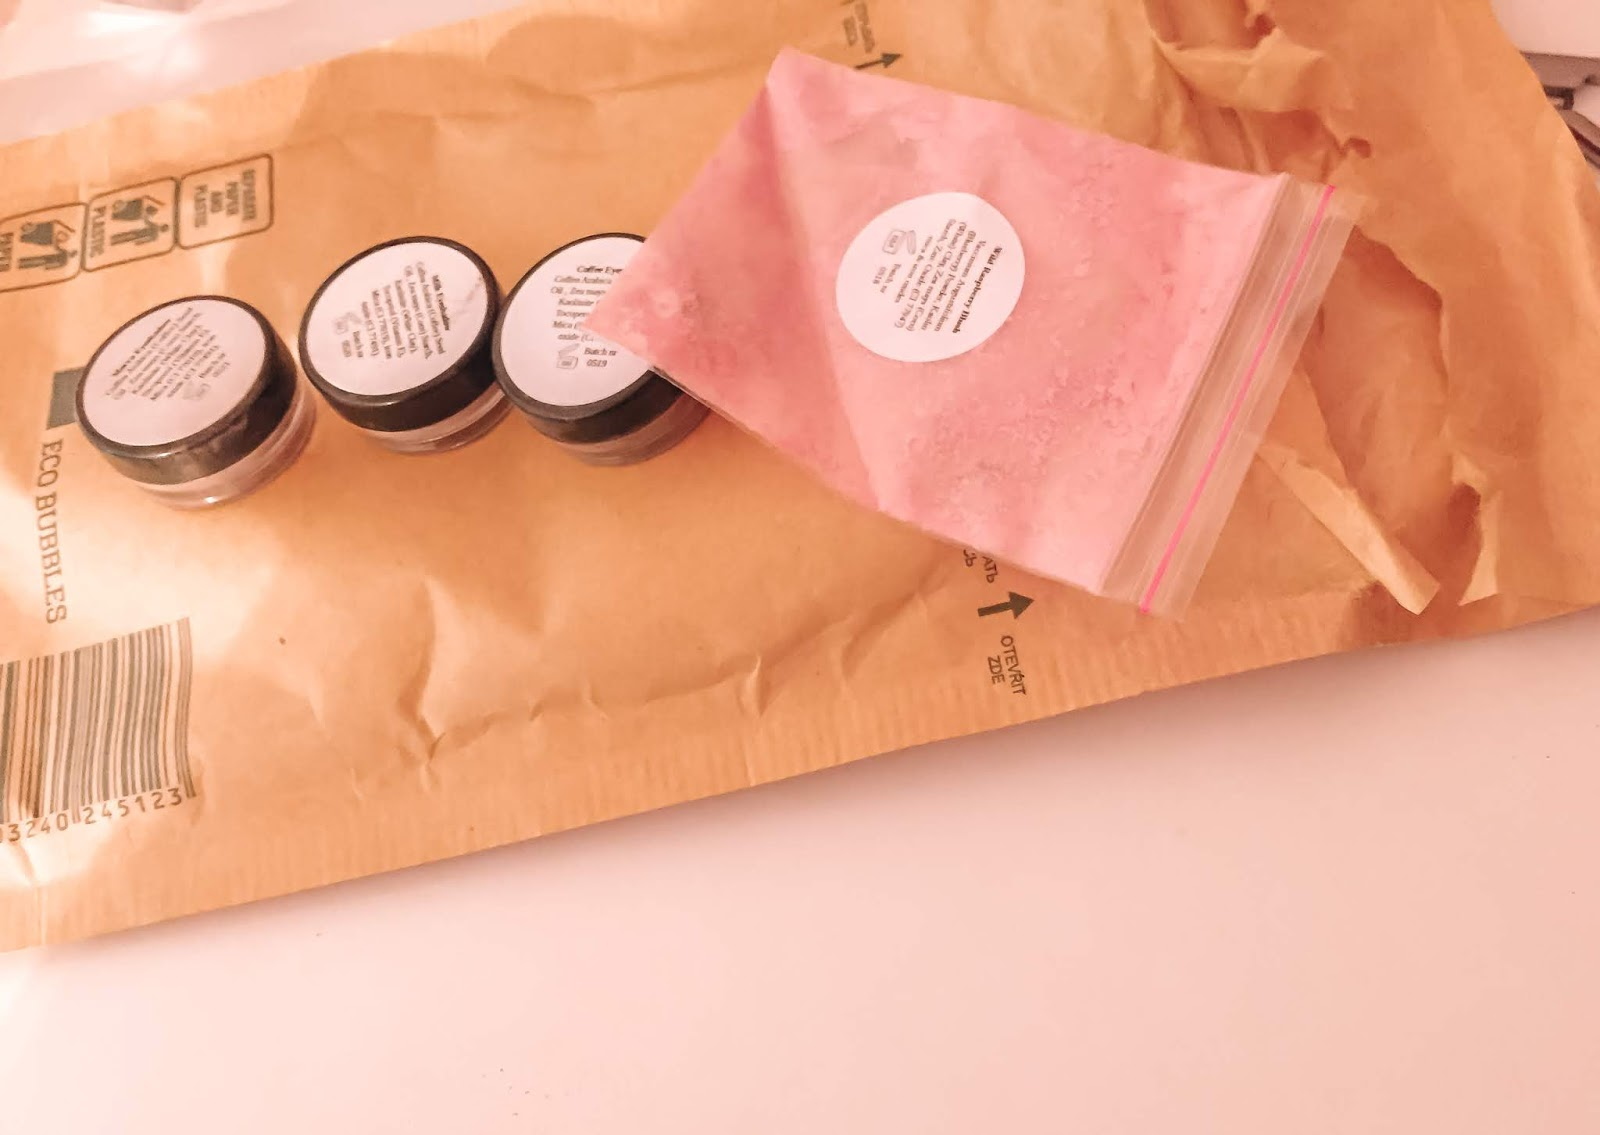 VyanaPlantBeauty Zero Waste eyeshadow Sample Kit Trio in a post about my 2020 no buy challenge February update.